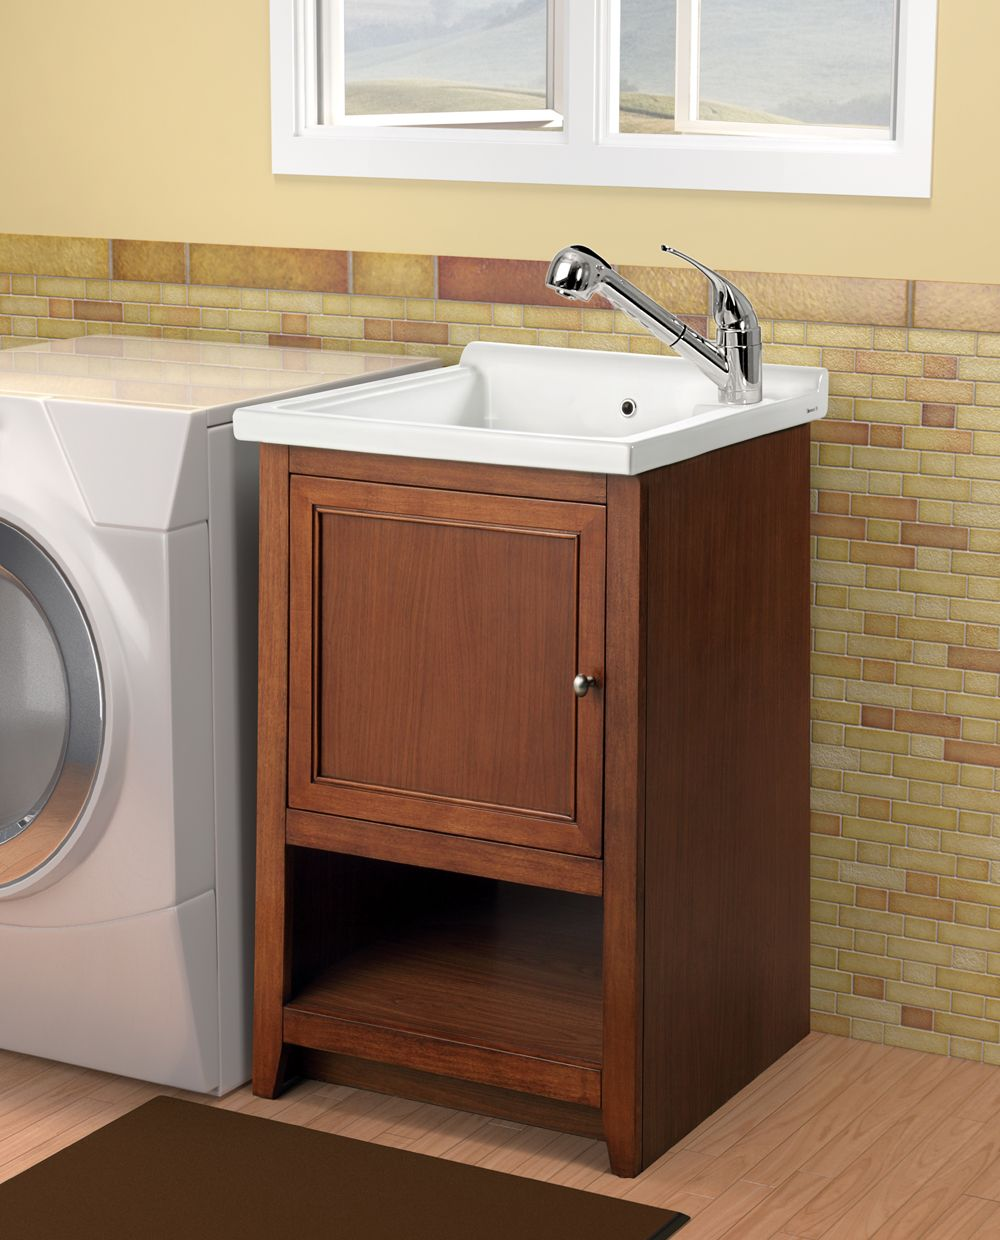 Brown Wooden Laundry Cabinet And Simple White Sink Has Small Door On Brick Wallpaper Design Charming